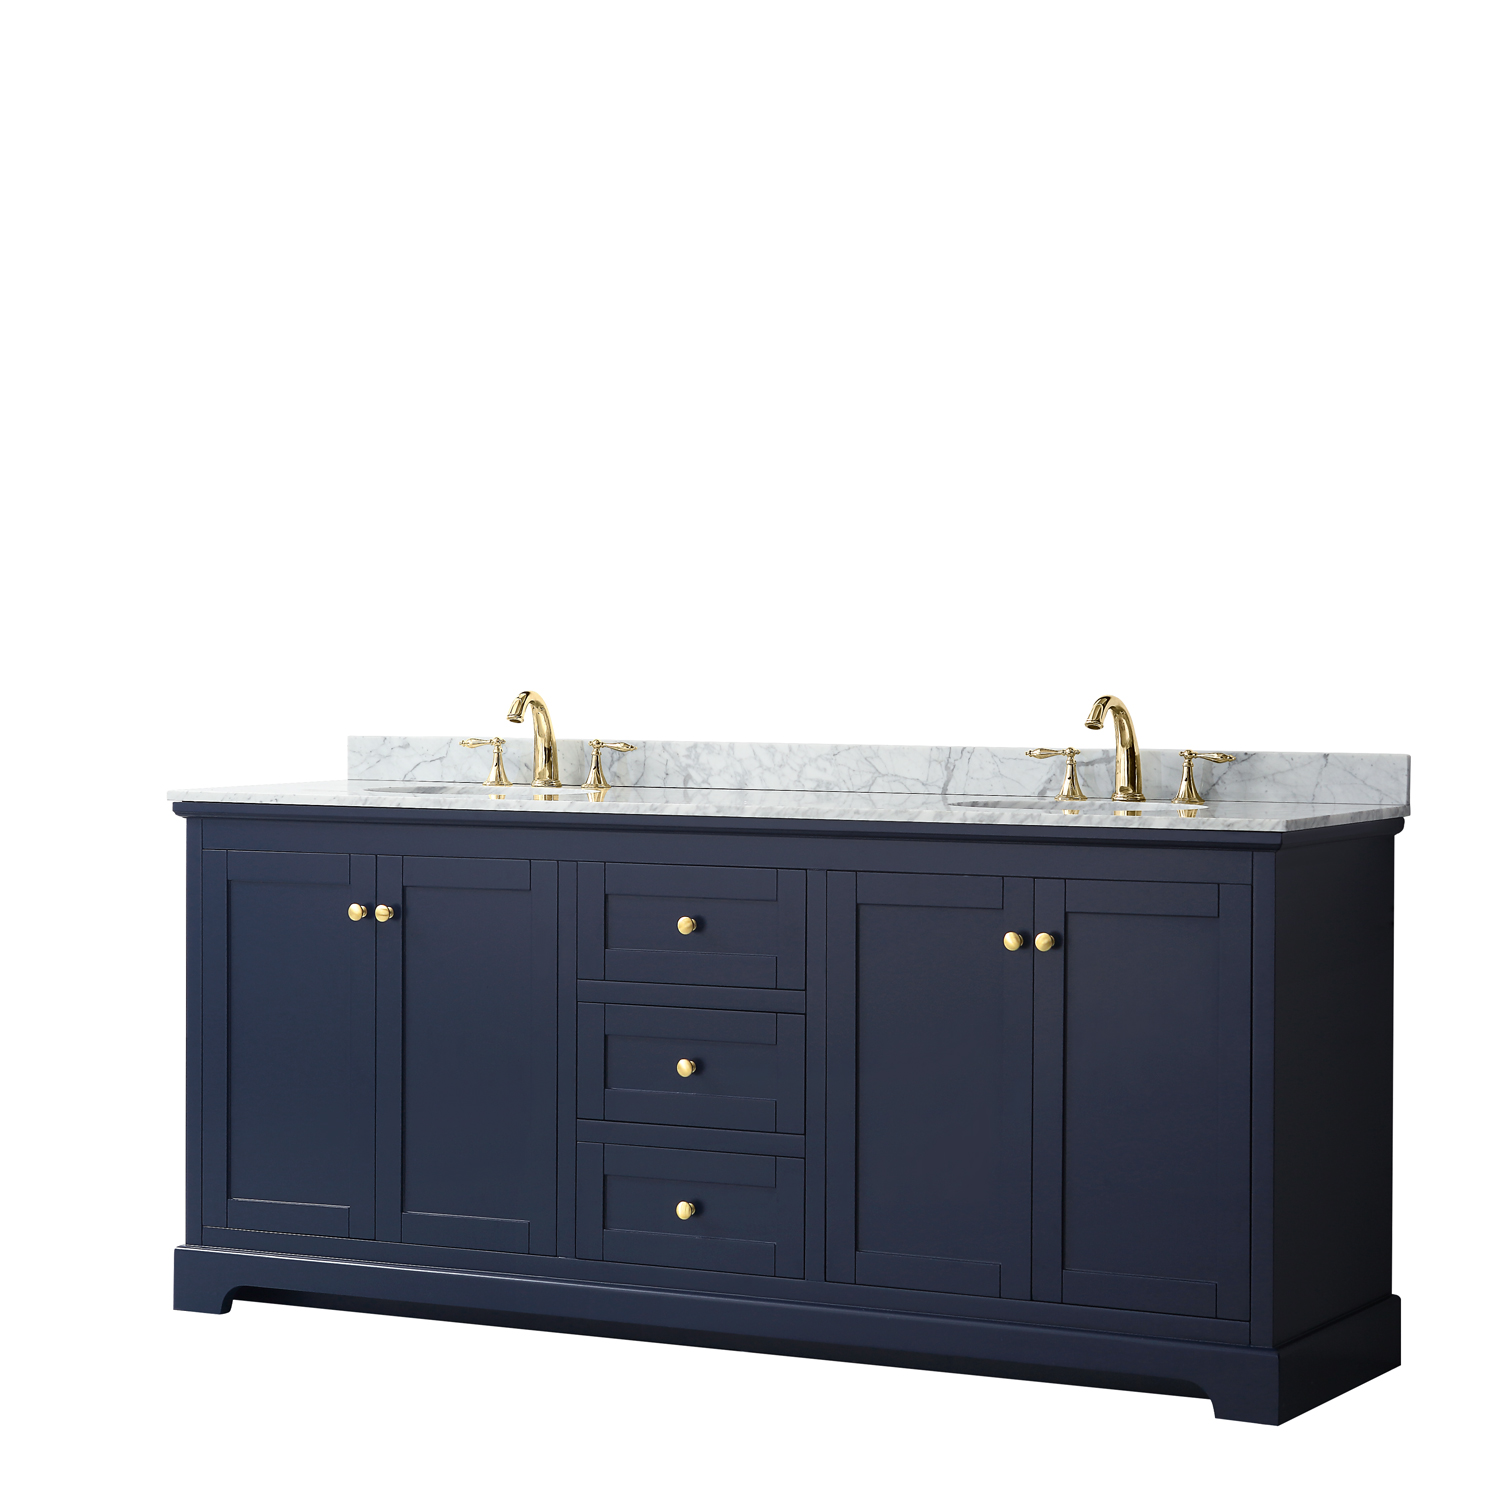 "80"" Double Bathroom Vanity in Dark Blue, No Countertop, No Sinks, and No Mirror"